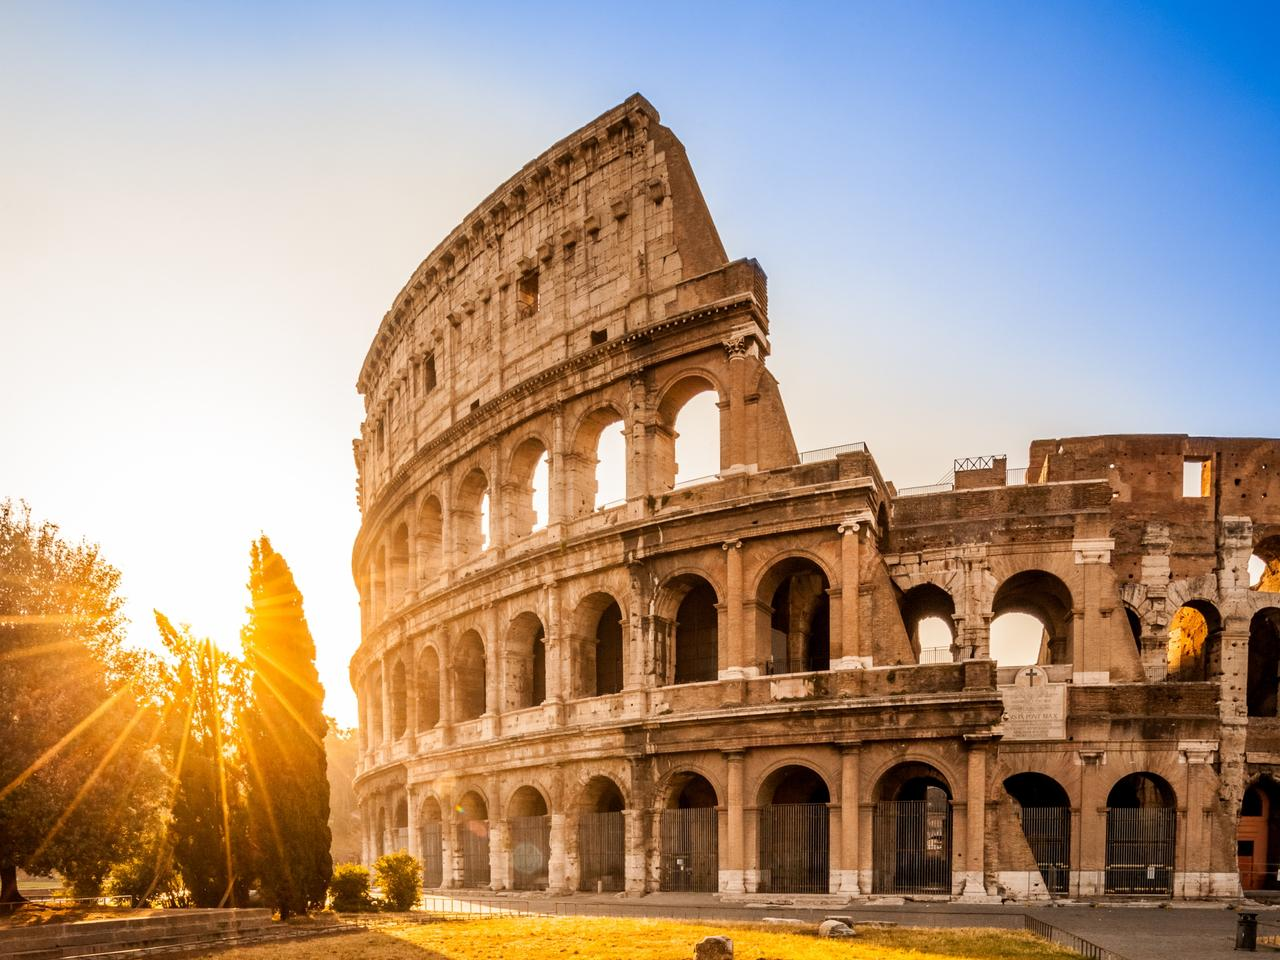 Colosseum at sunrise, Rome, Italy